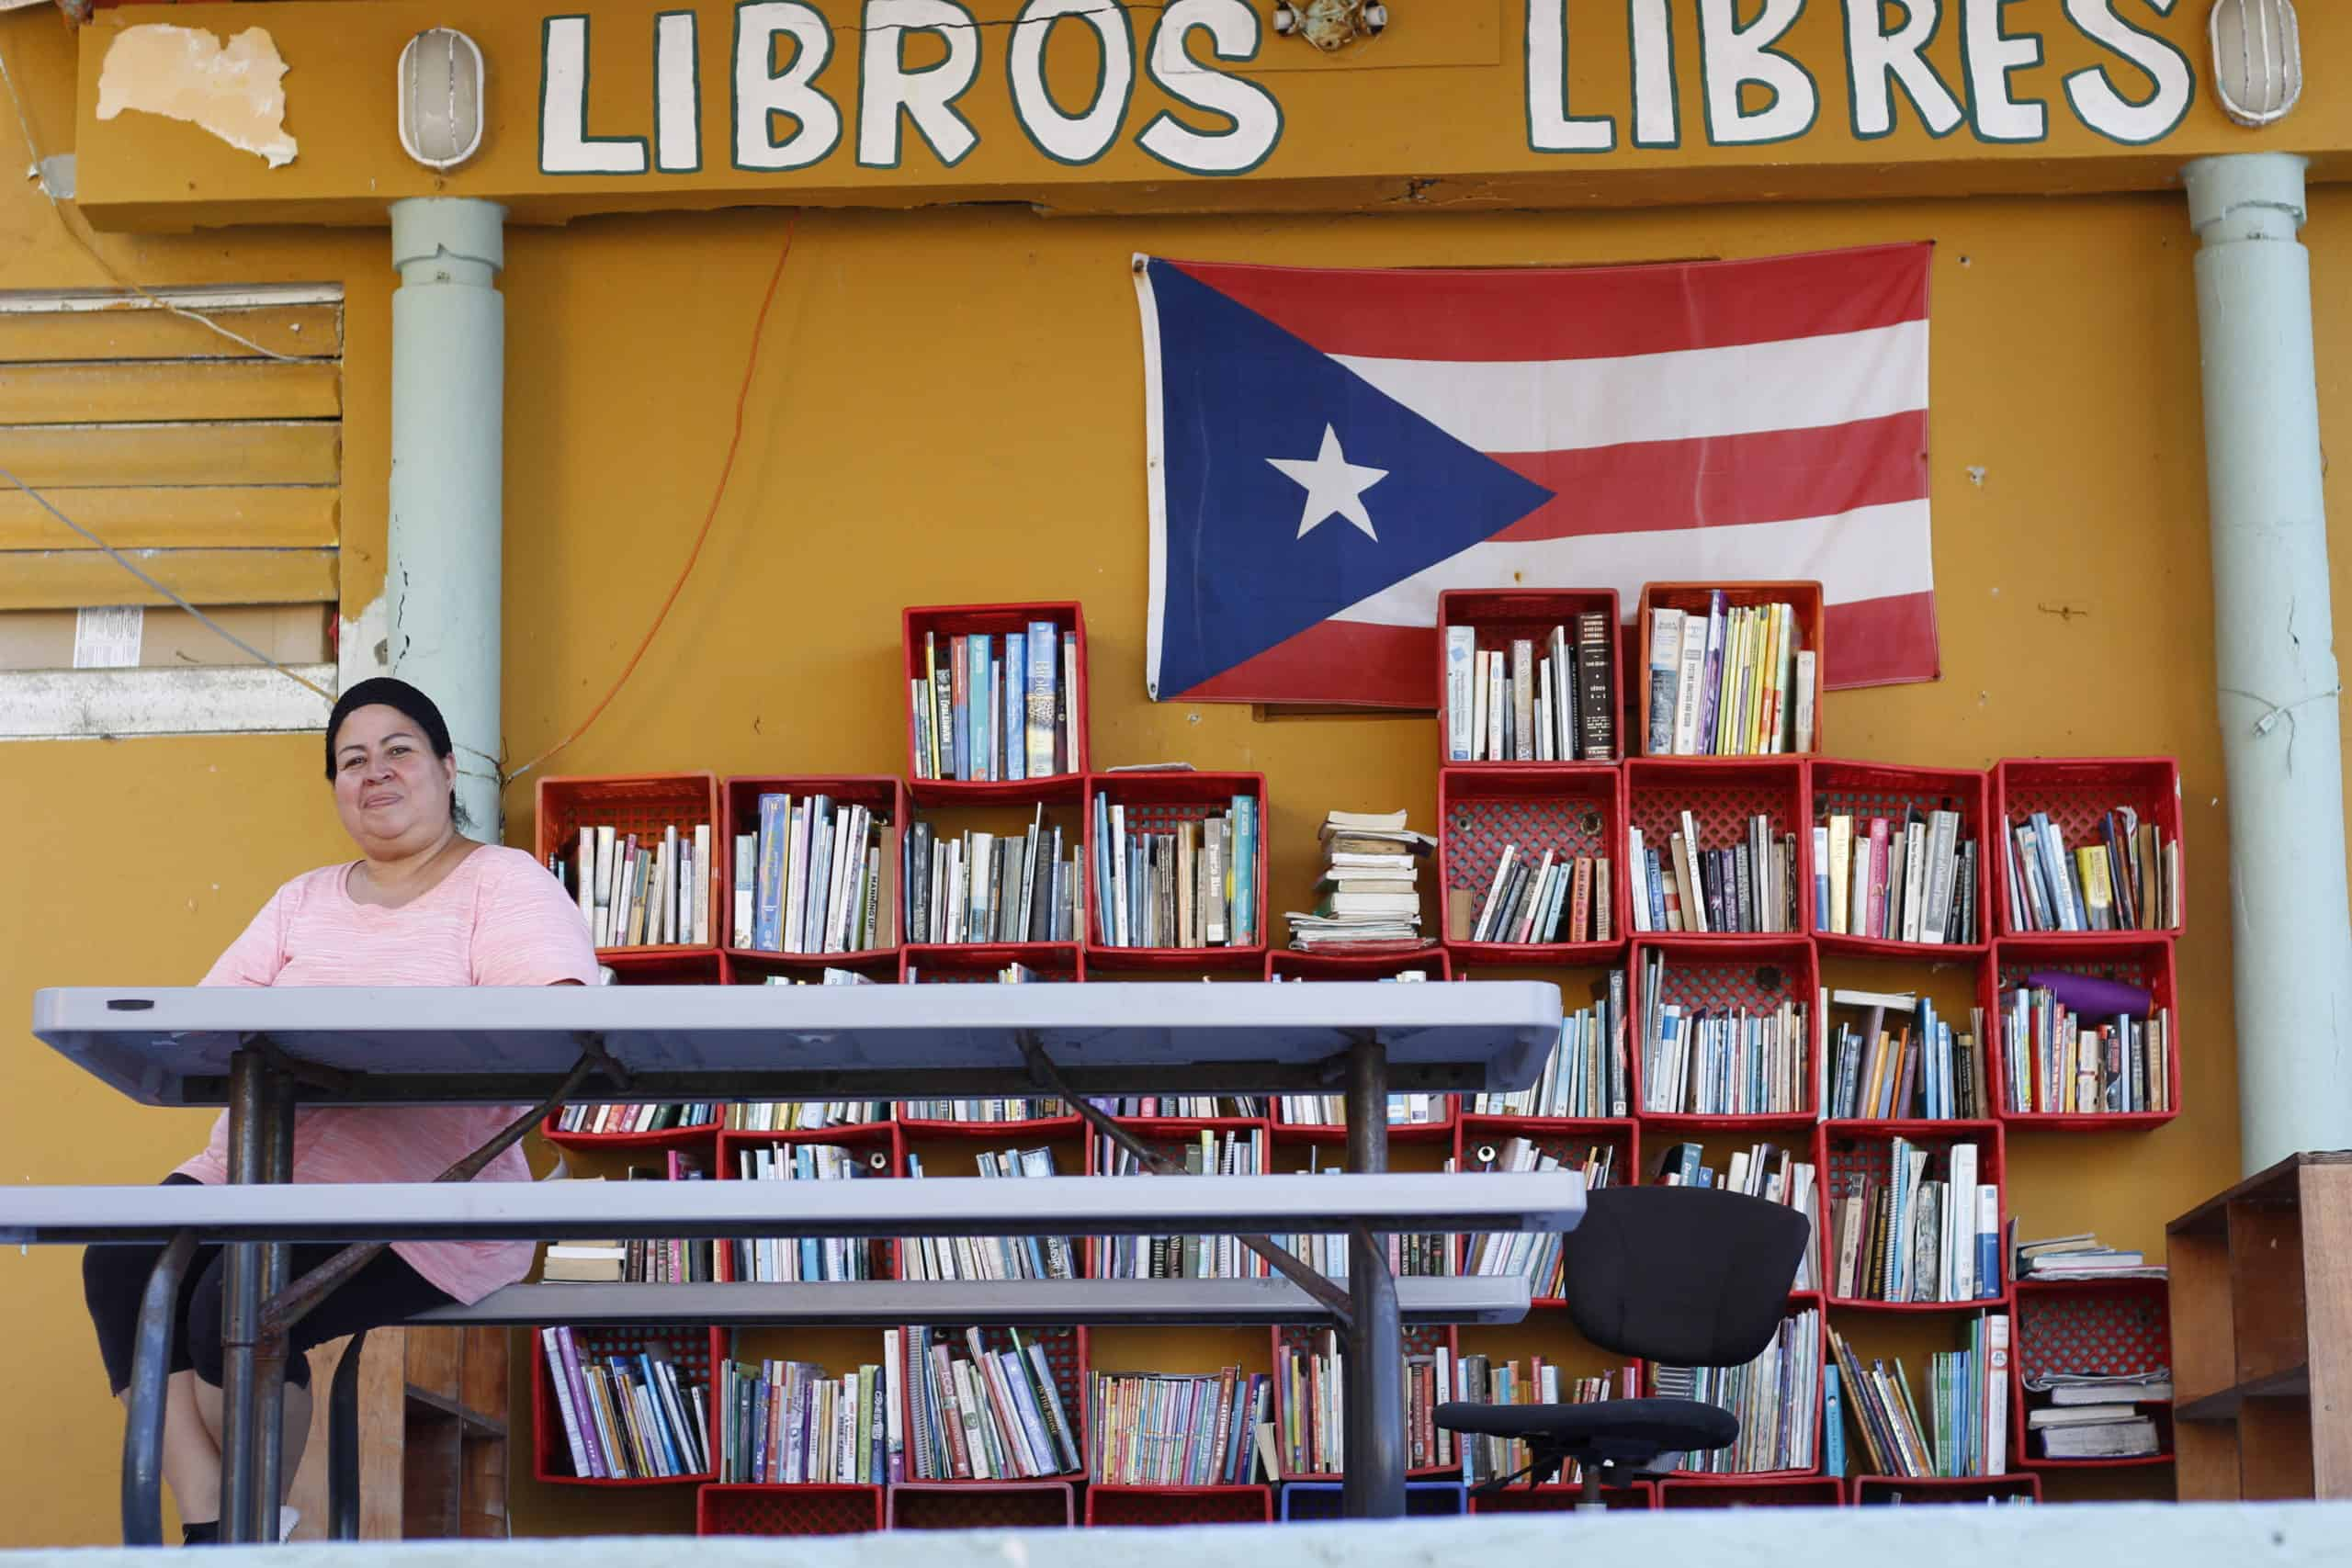 A woman sits at a picnic table in front of bookshelves filled with books and a Puerto Rican flag.